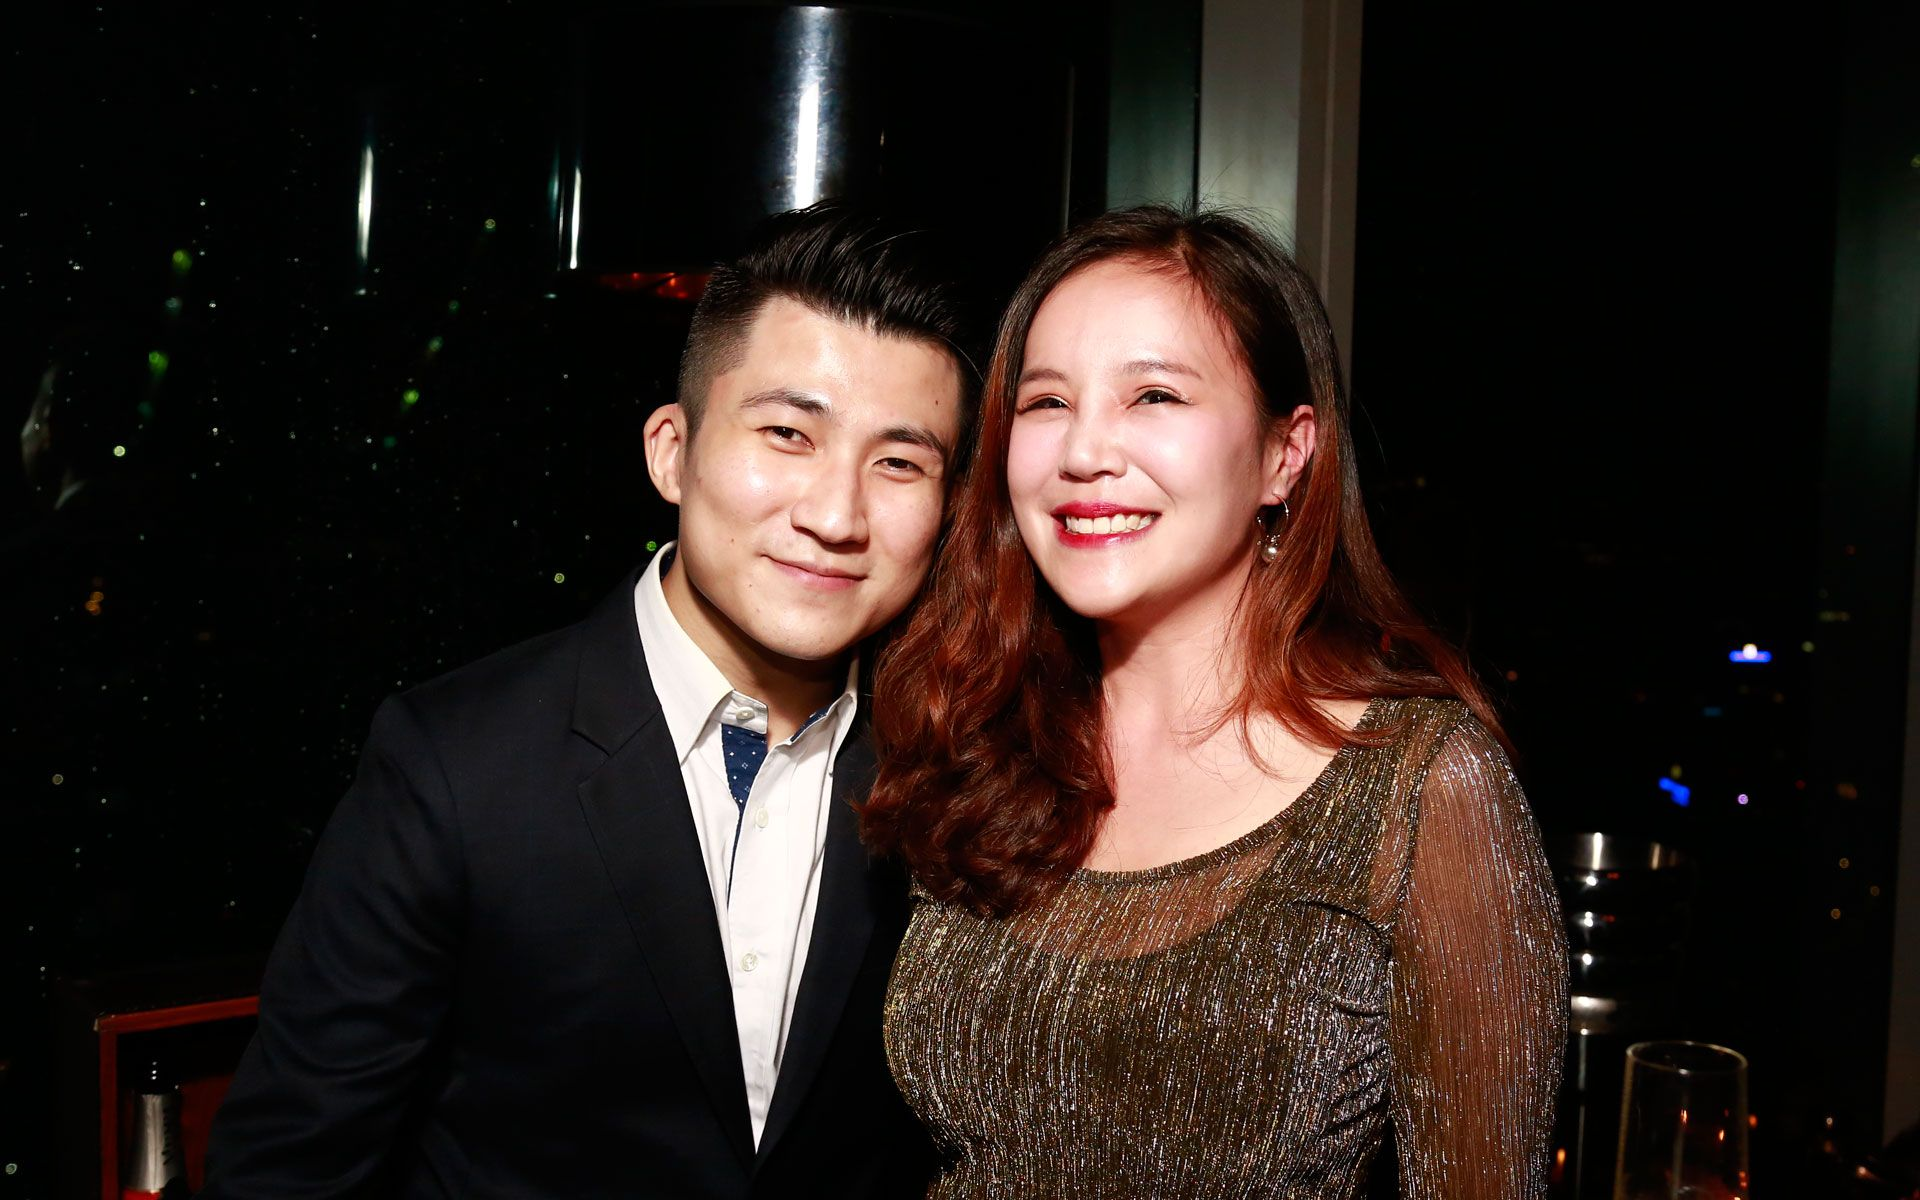 Kent Ong and Daphne Tan